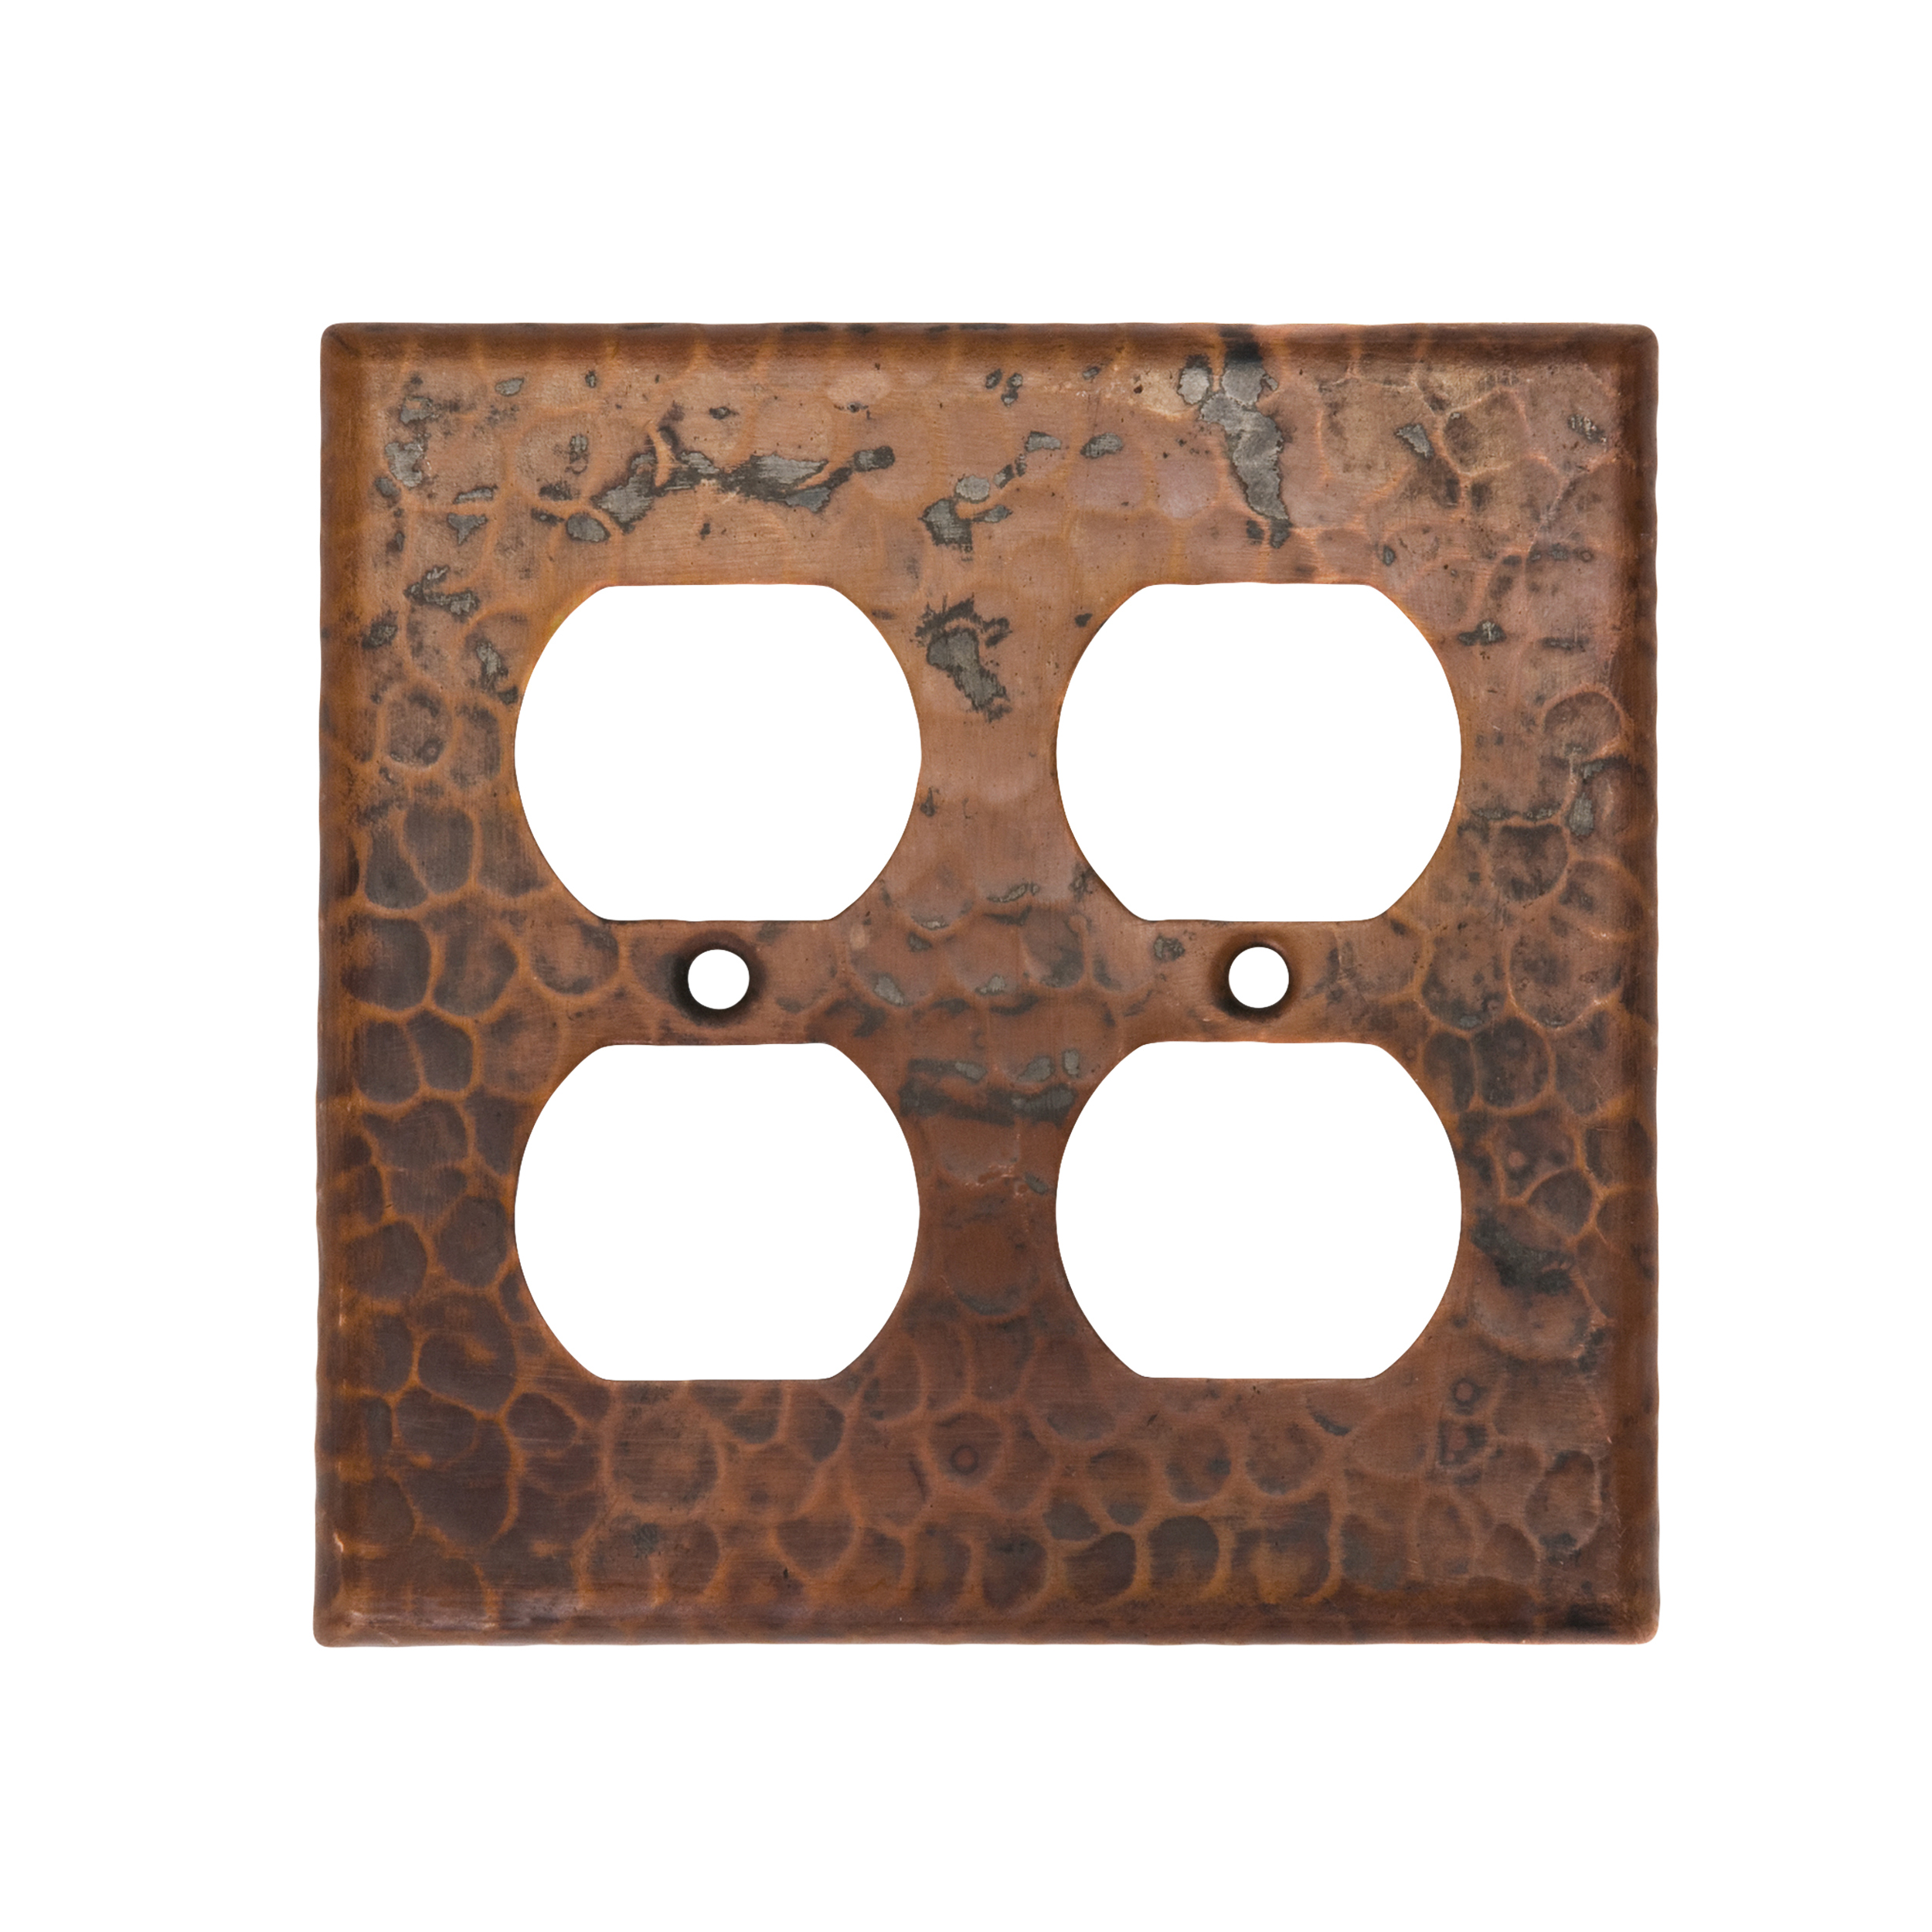 Double Duplex 4-Hole Outlet Switchplate Cover